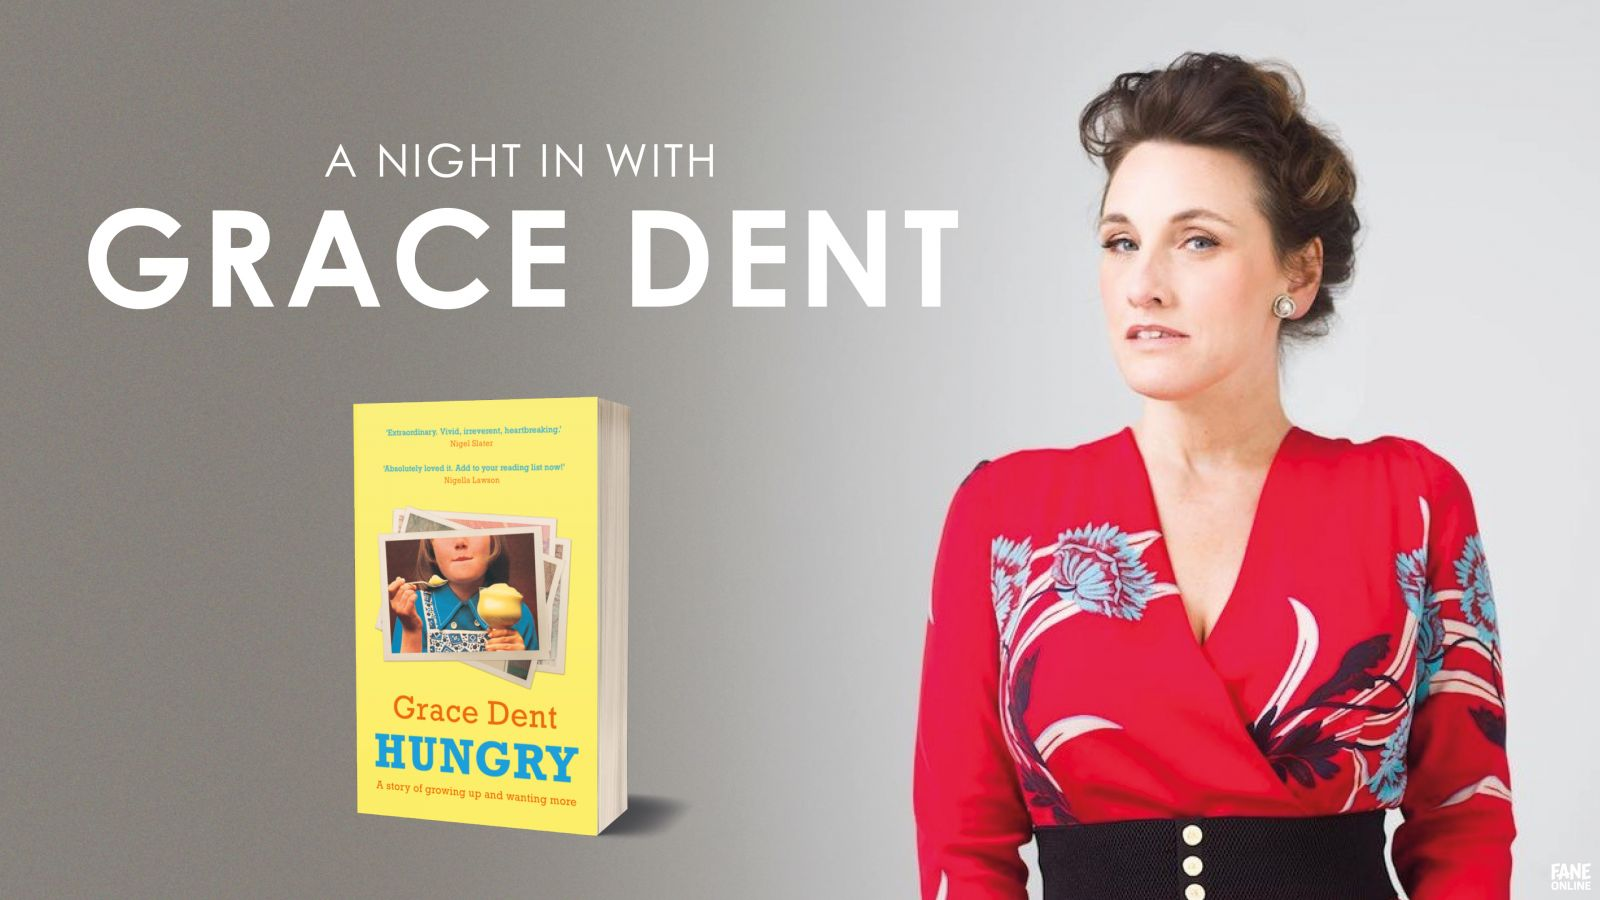 A Night In With Grace Dent